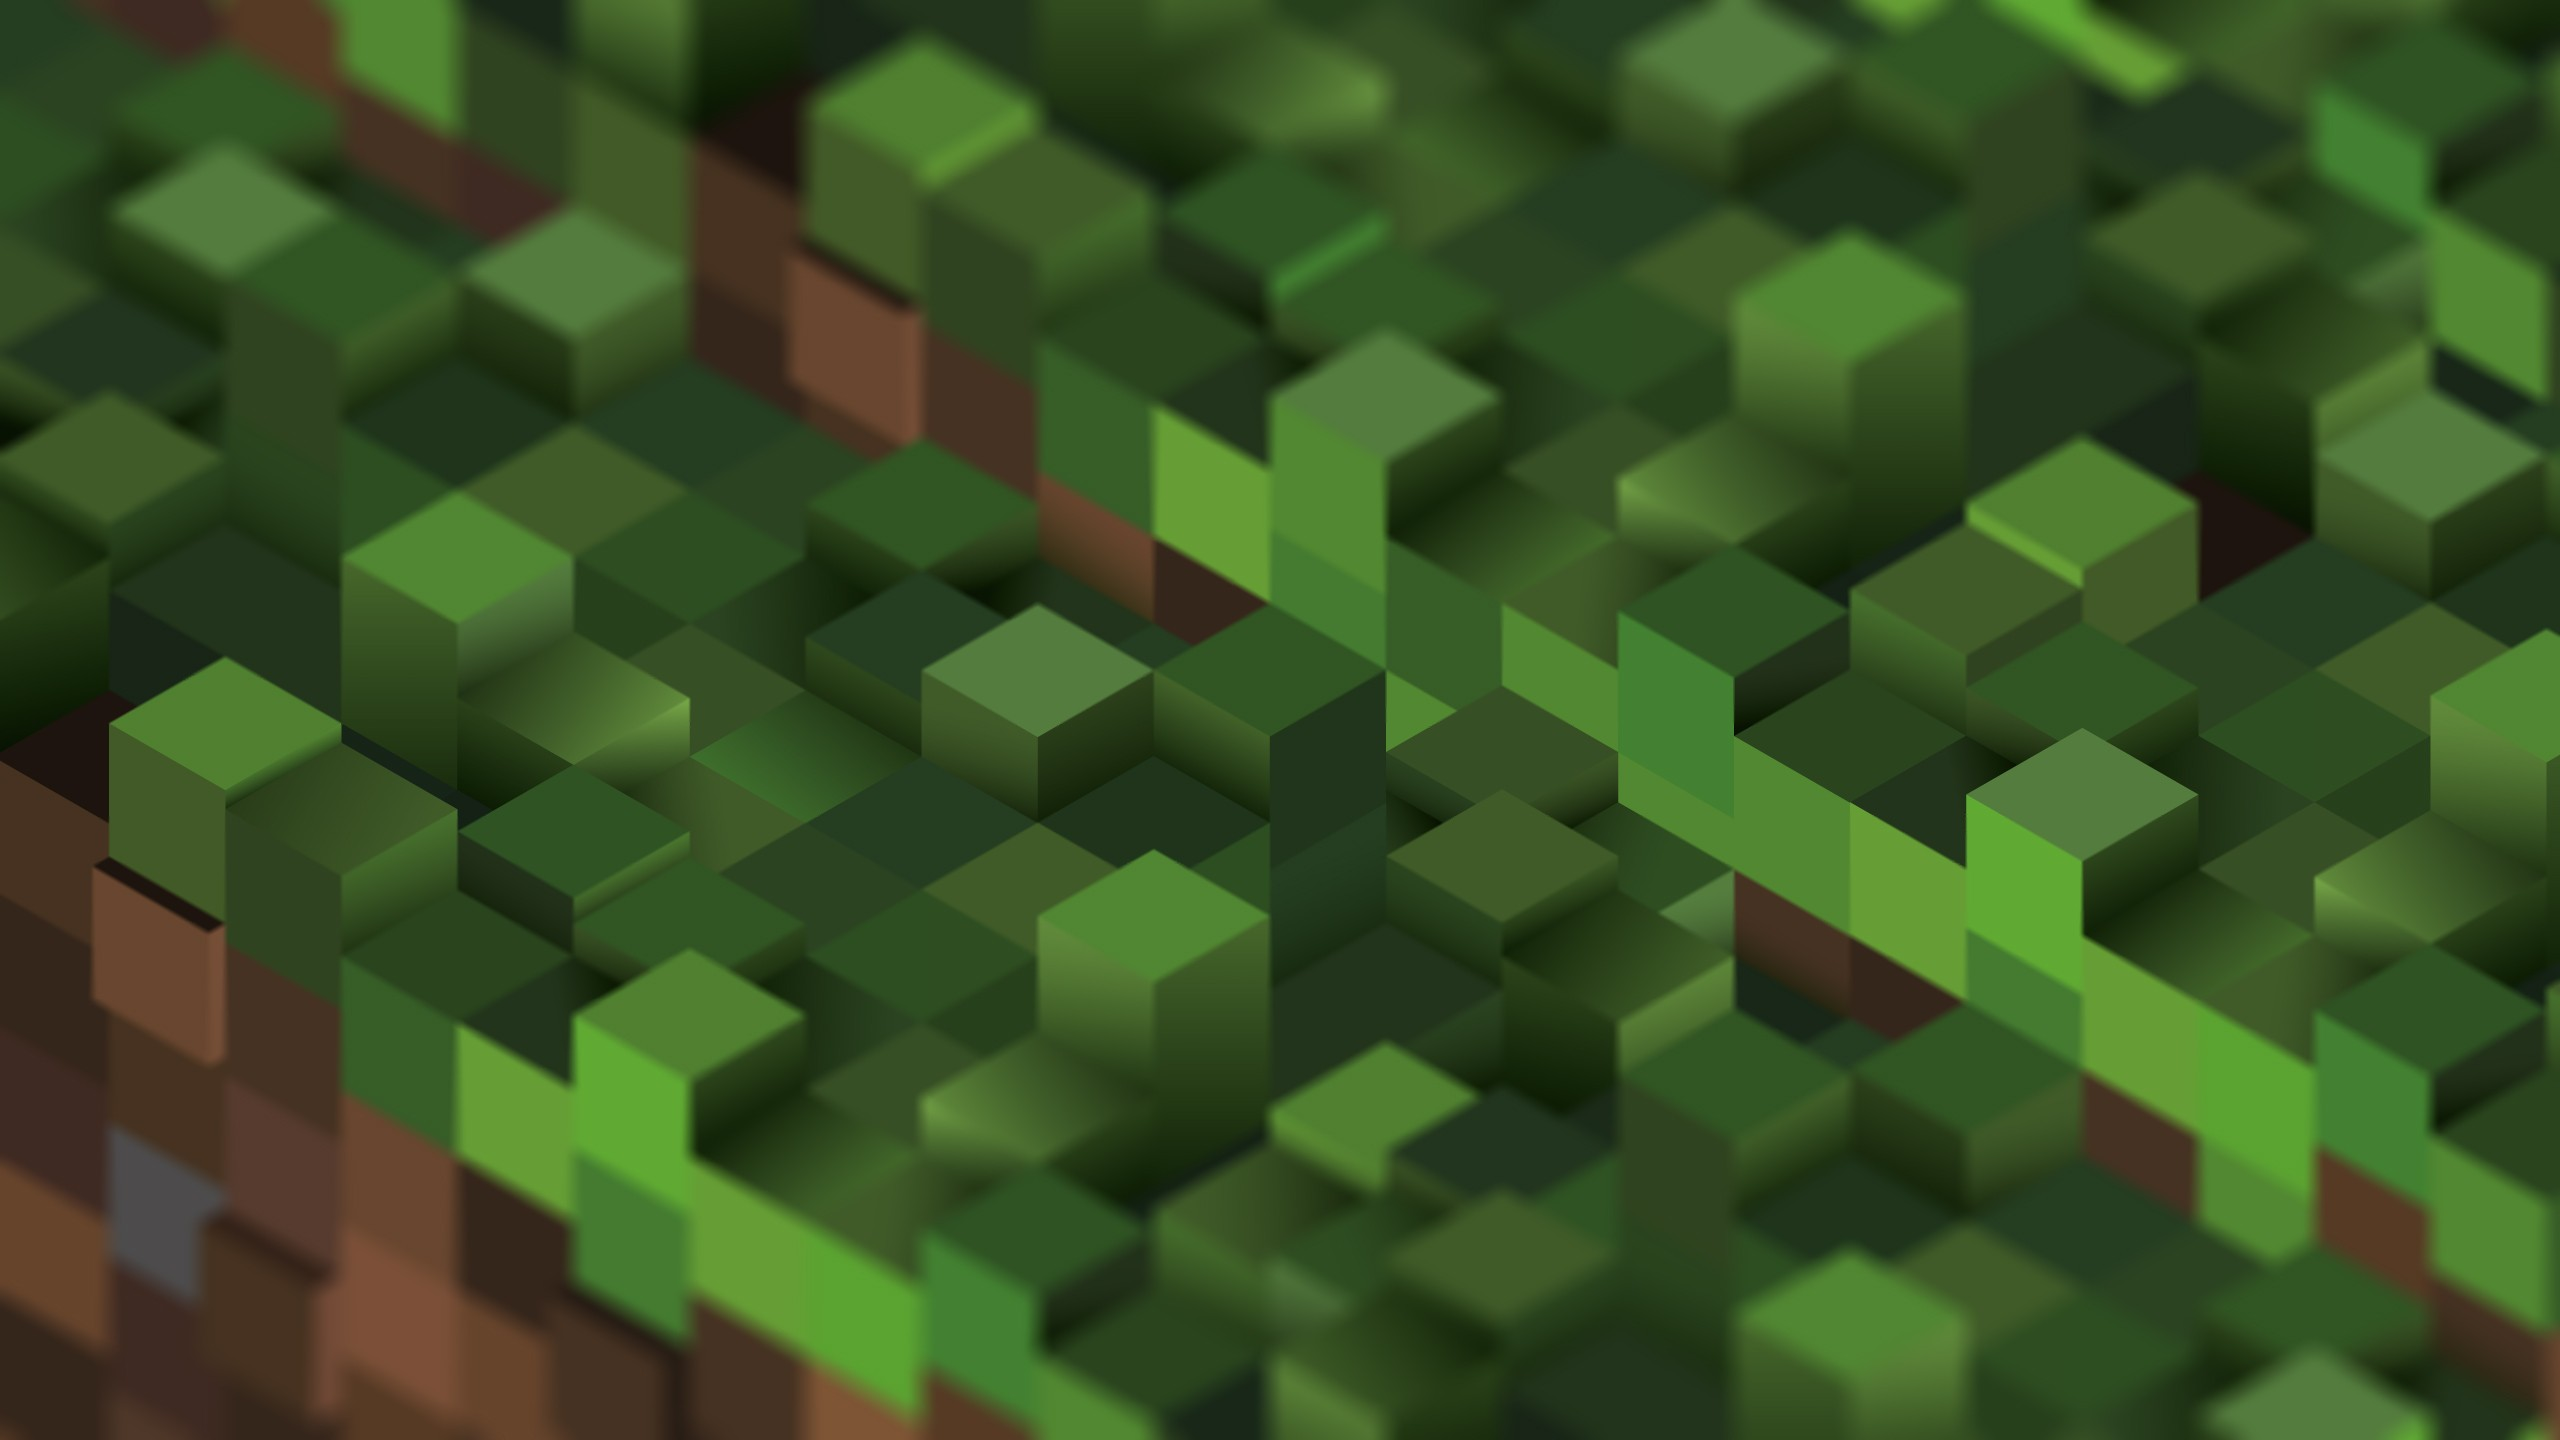 Simple Wallpaper Minecraft Pattern - minecraft-wallpaper-18896-19377-hd-wallpapers  You Should Have_305429.jpg